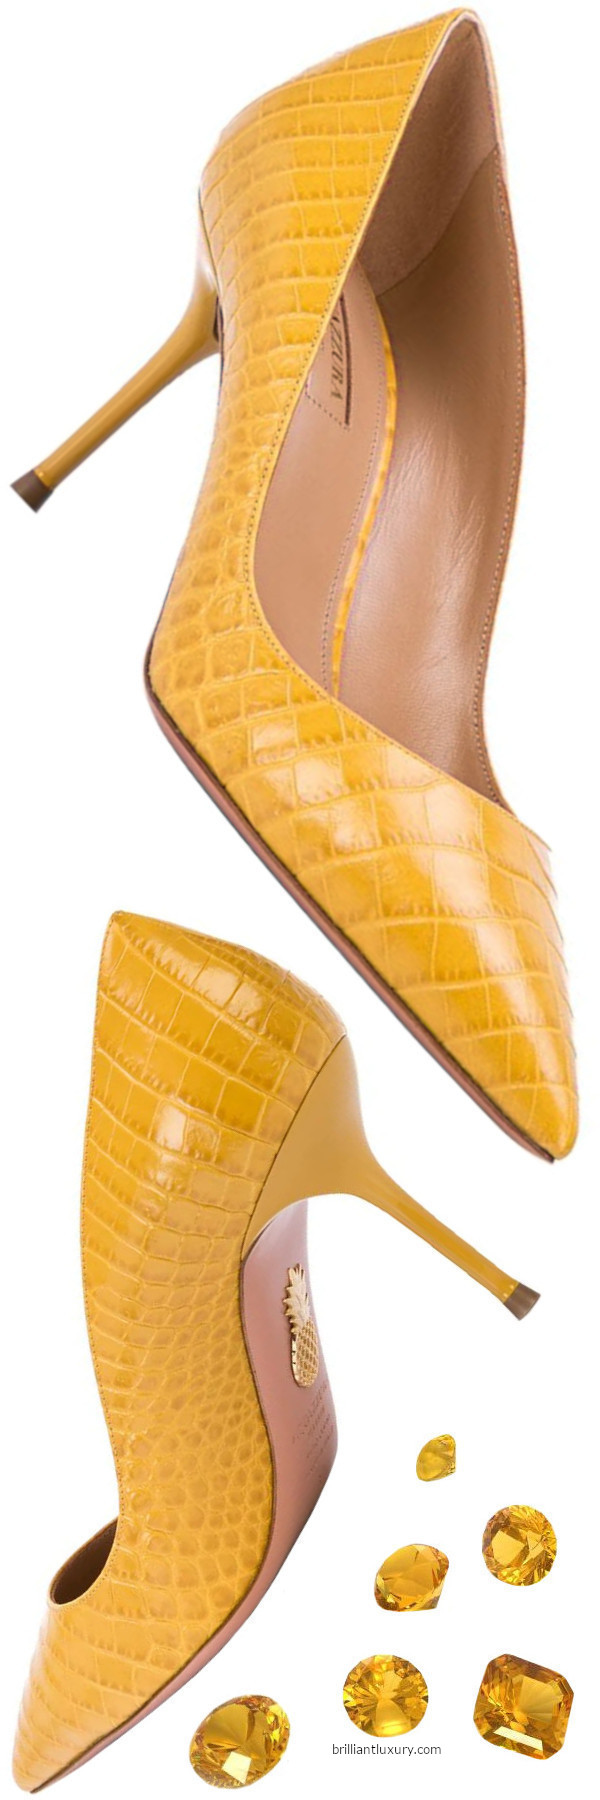 Aquazzura Purist yellow embossed crocodile effect pumps